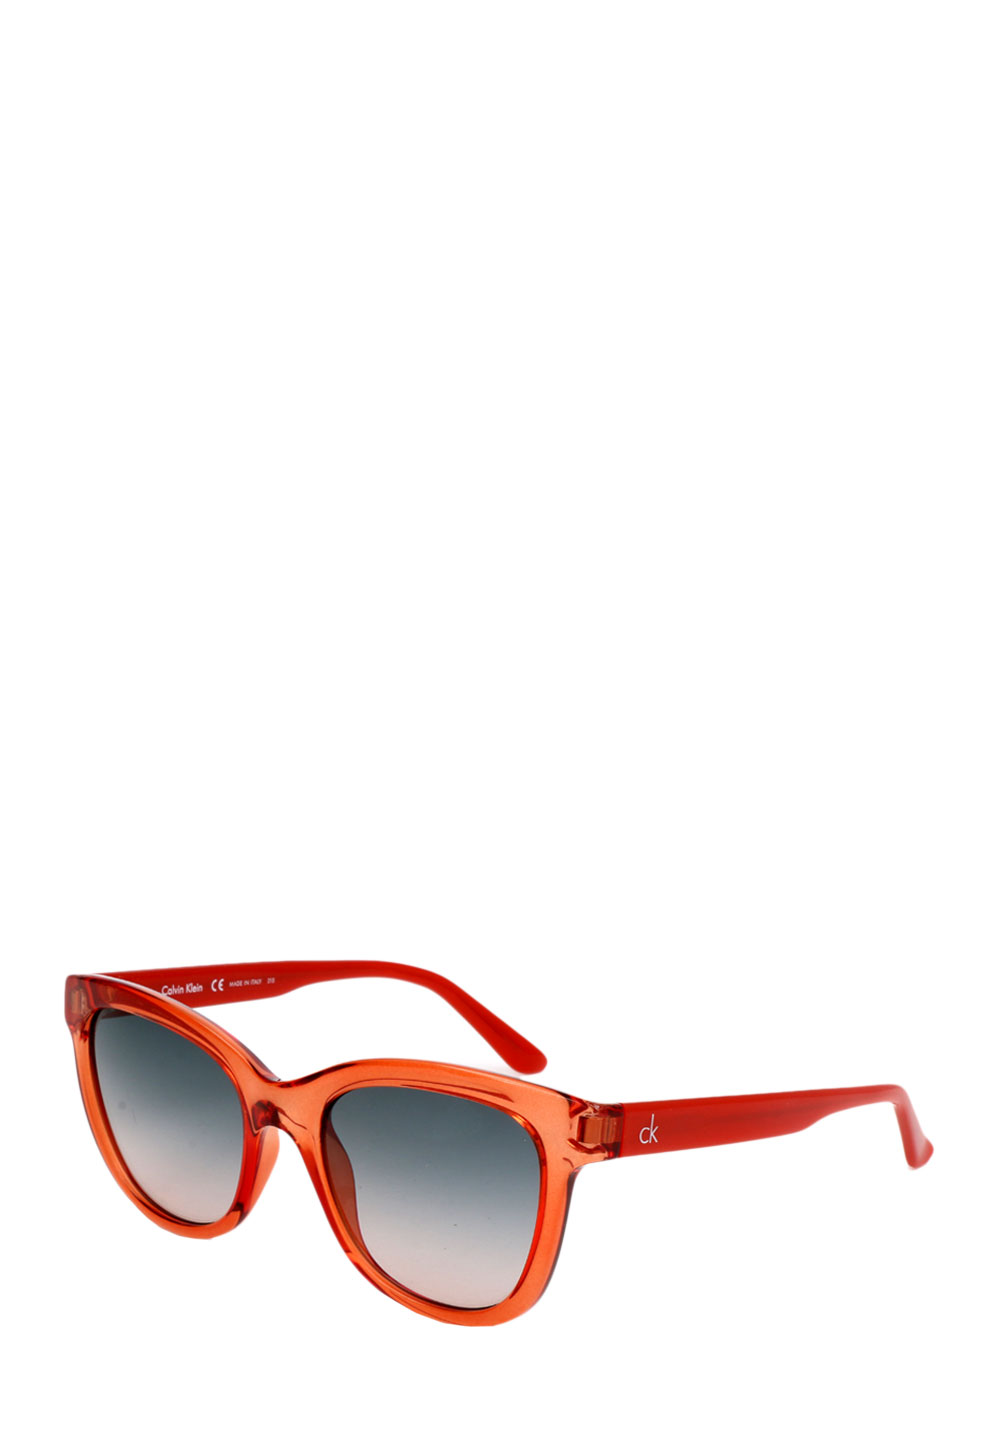 Sonnenbrille Ck5909S, UV 400, UV 400 orange